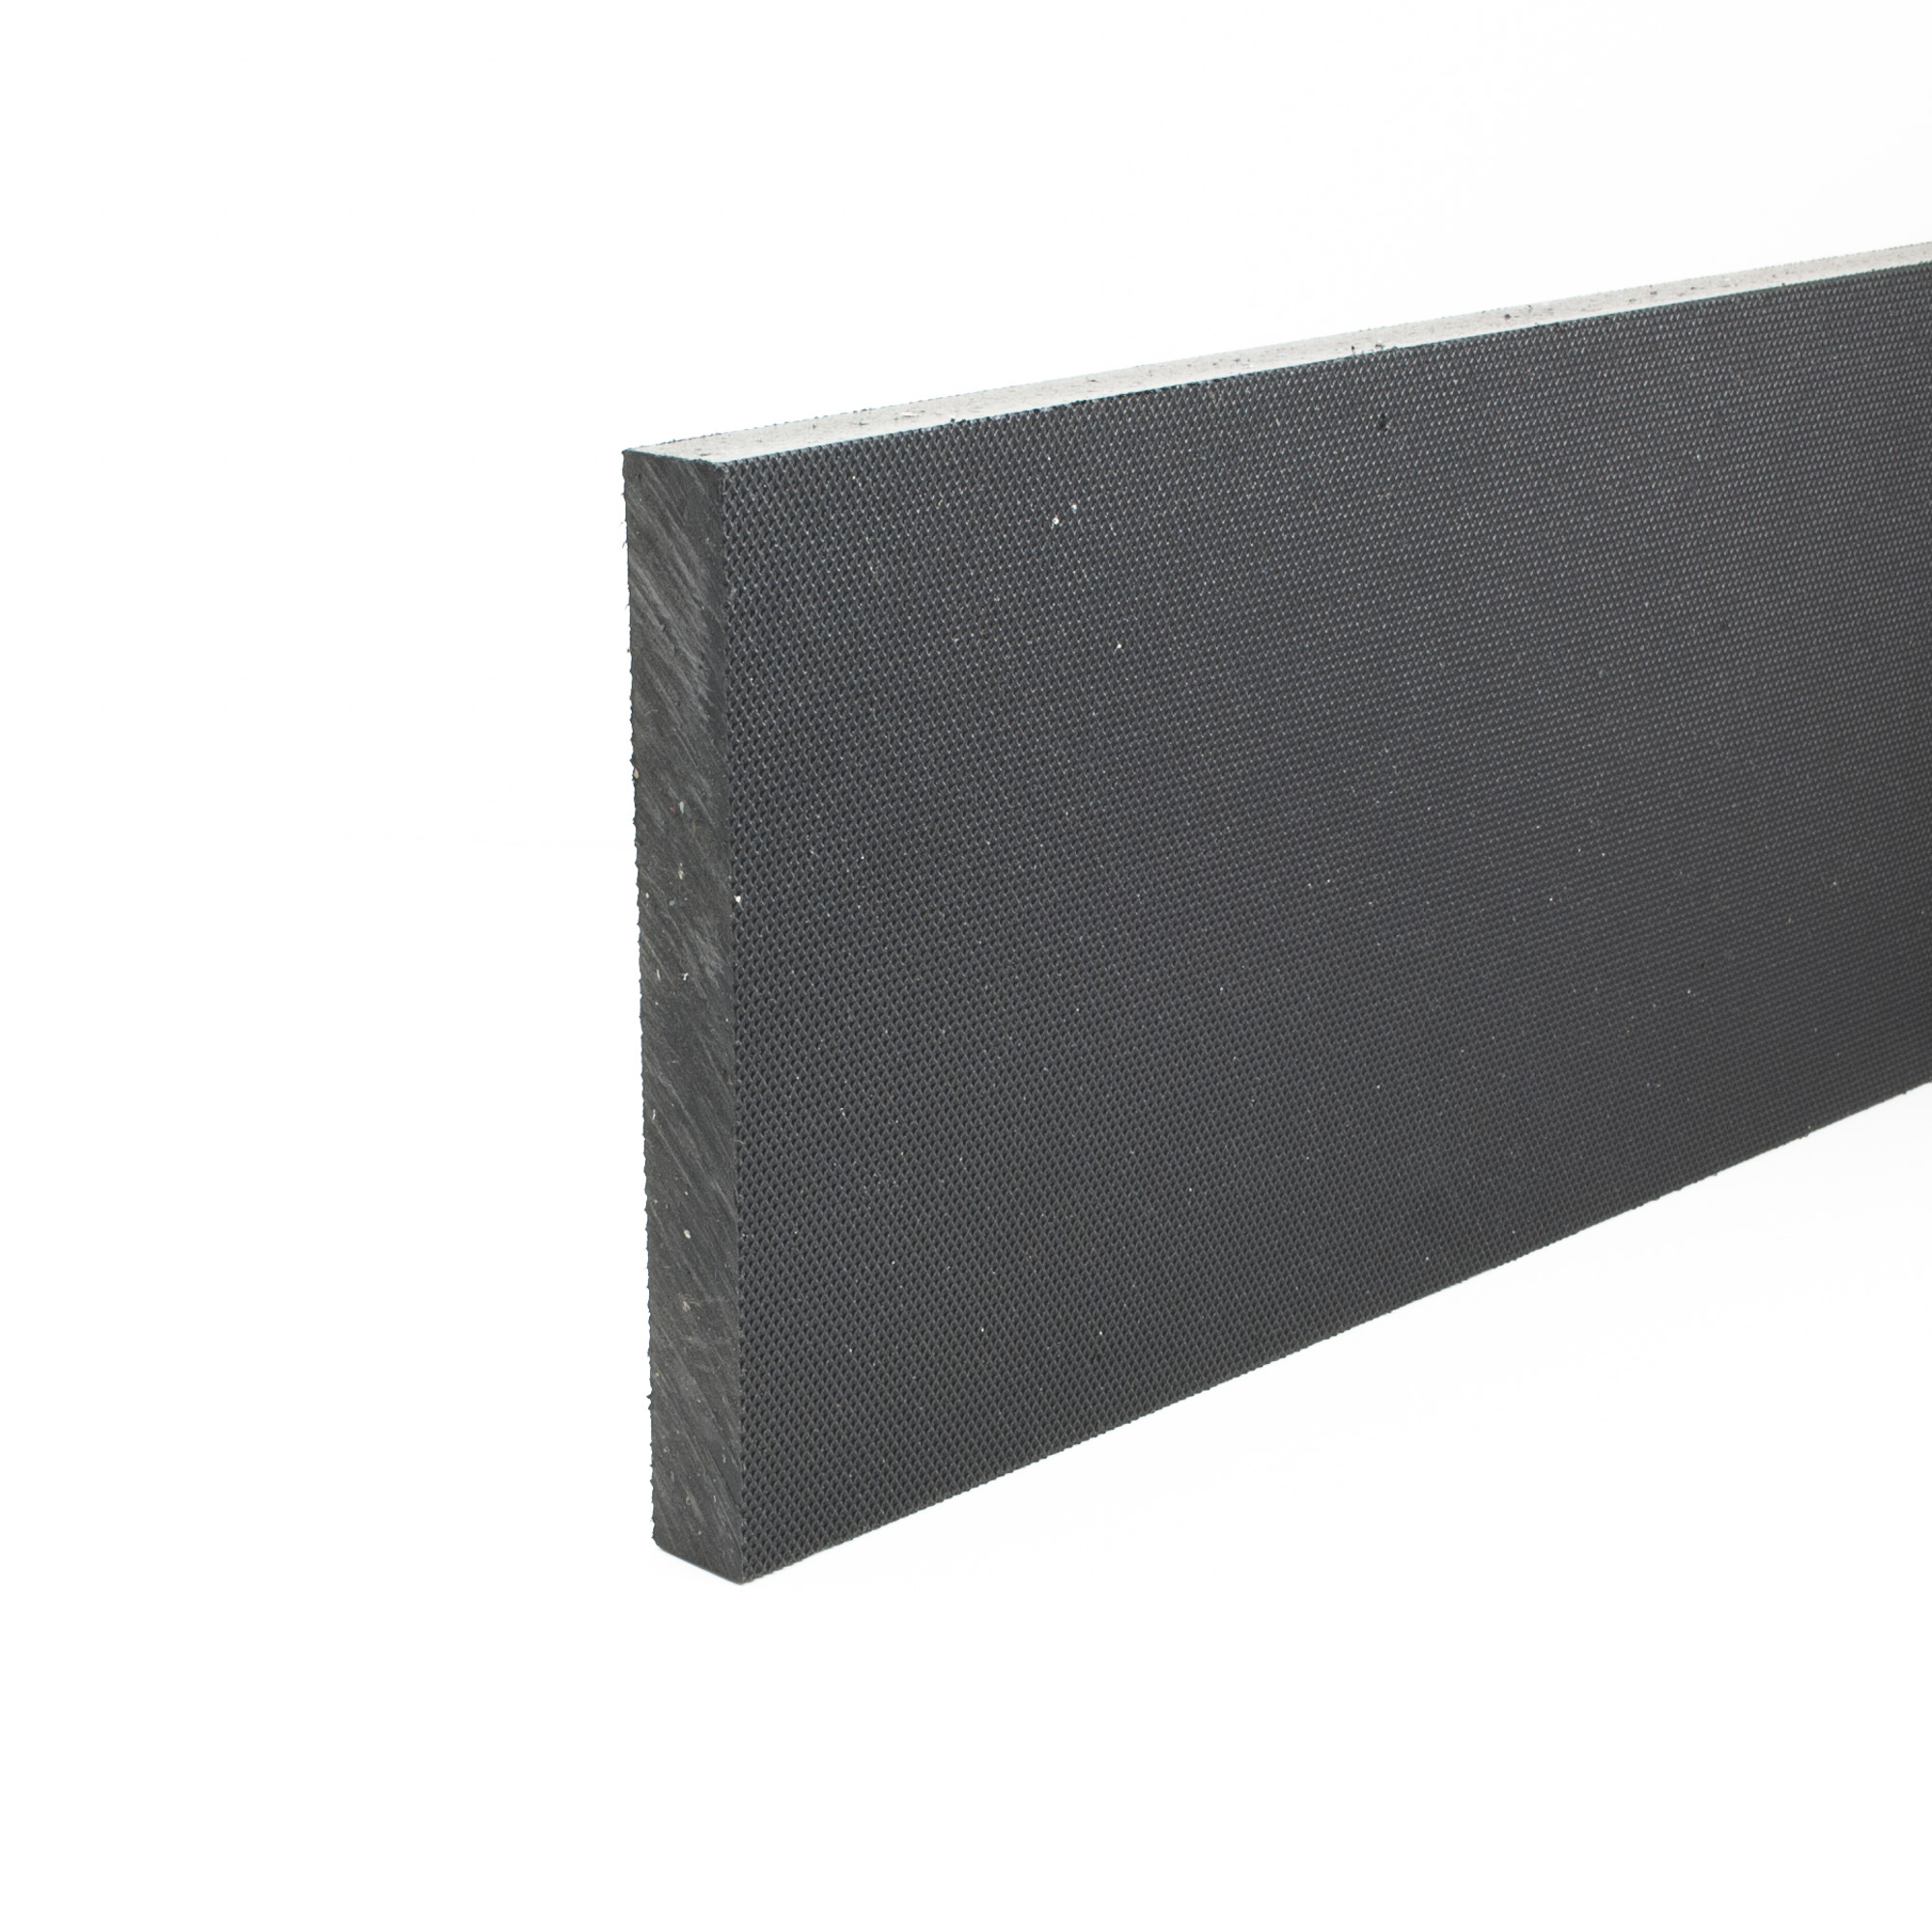 Stokbord Embossed LDPE Black 18mm x 1.22m x 2.44m sheet